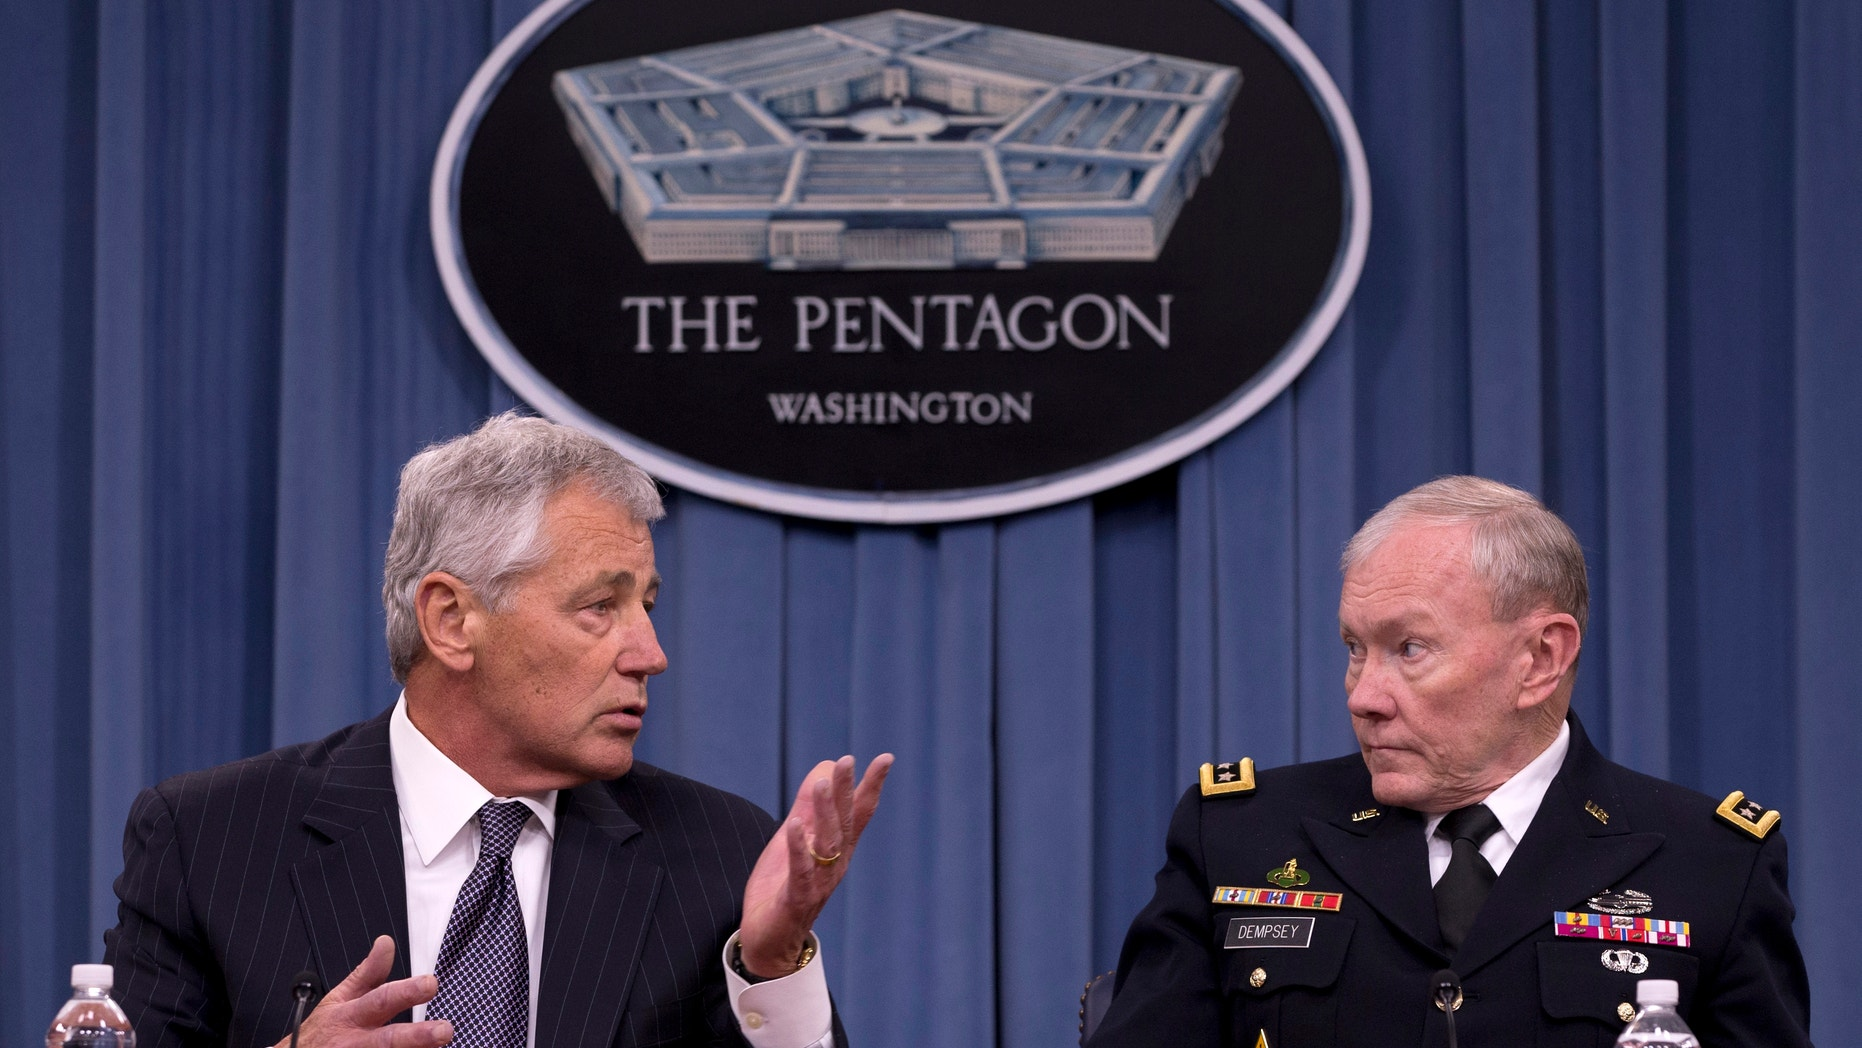 May 17, 2013: Defense Secretary Chuck Hagel, left, accompanied by Joint Chiefs Chairman Gen. Martin Dempsey, gestures as he speaks during a news conference at the Pentagon. The Obama administration is criticizing Russia's decision to provide Syria with anti-ship missiles, which it says will only worsen the civil war.